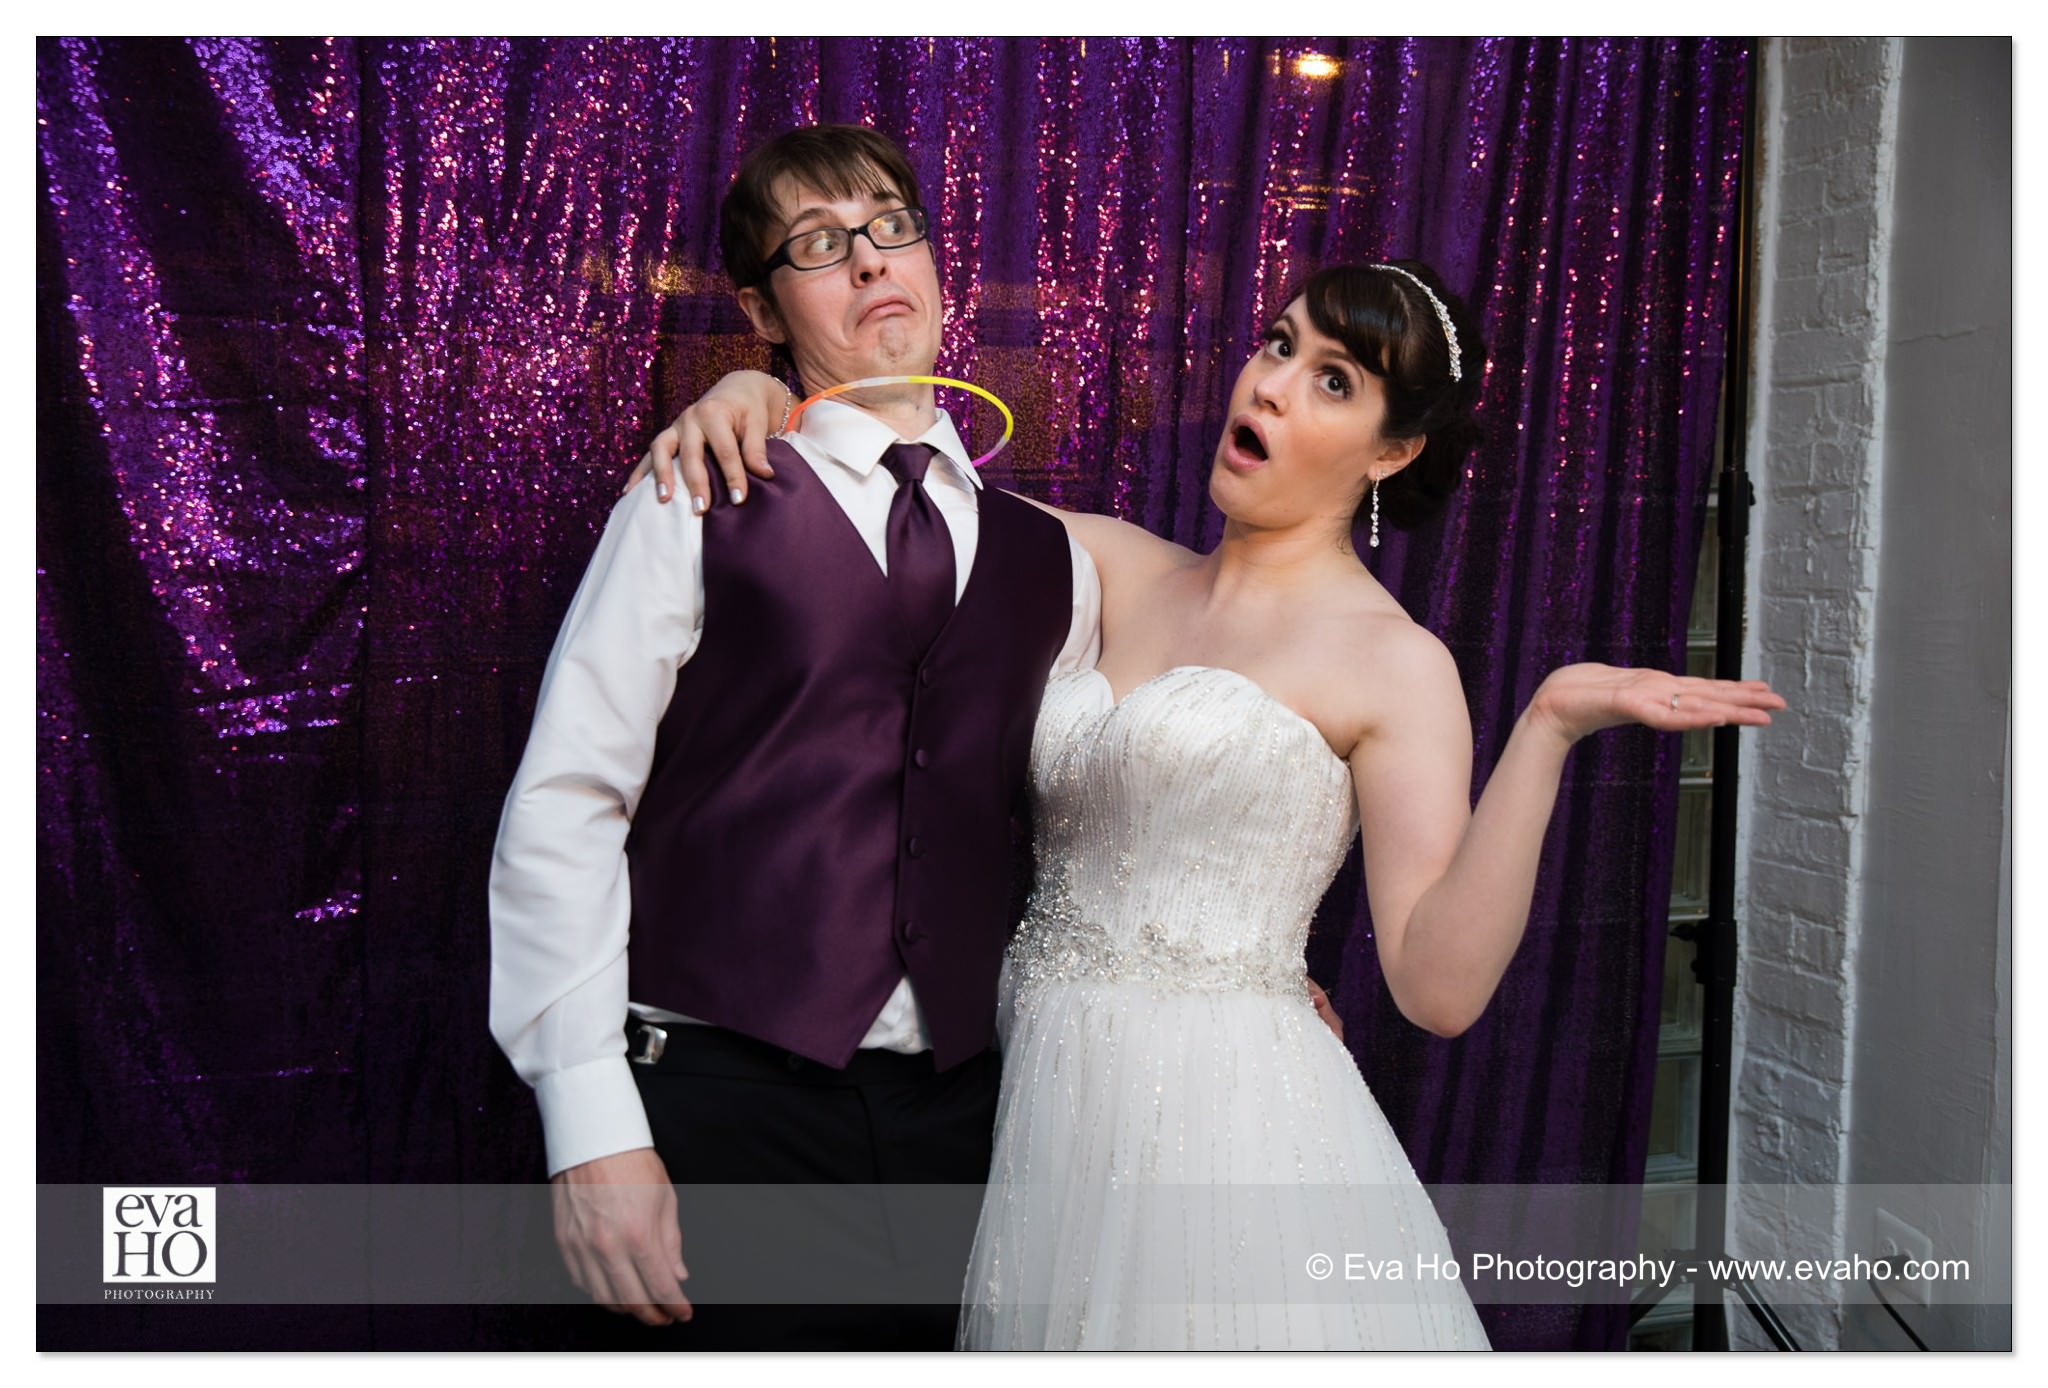 Silly bride & groom